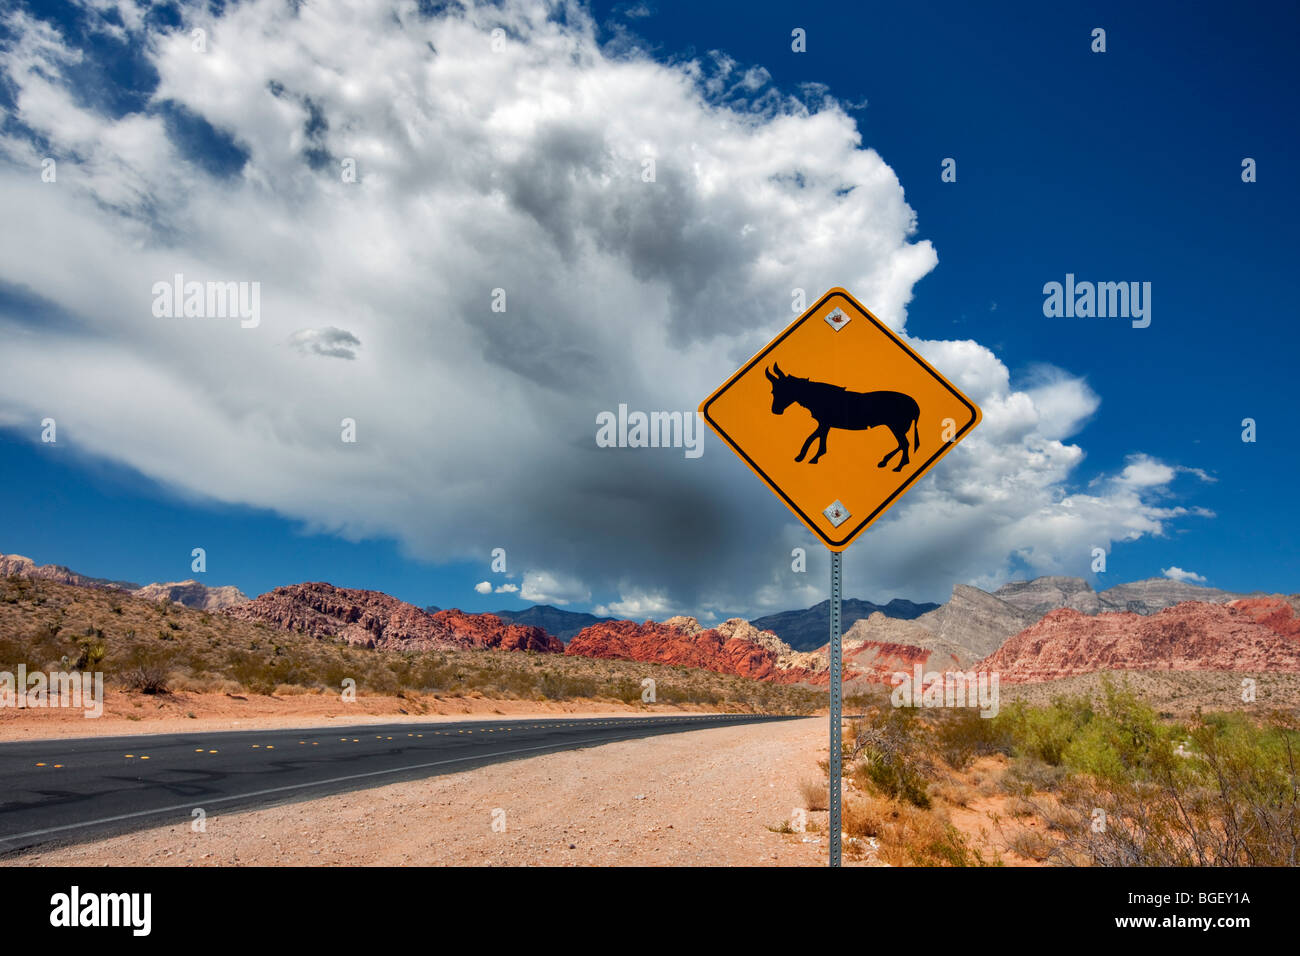 Road, mule sign, thunderstorm clouds and Rock formations in Red Rock Canyon National Conservation Area, Nevada - Stock Image